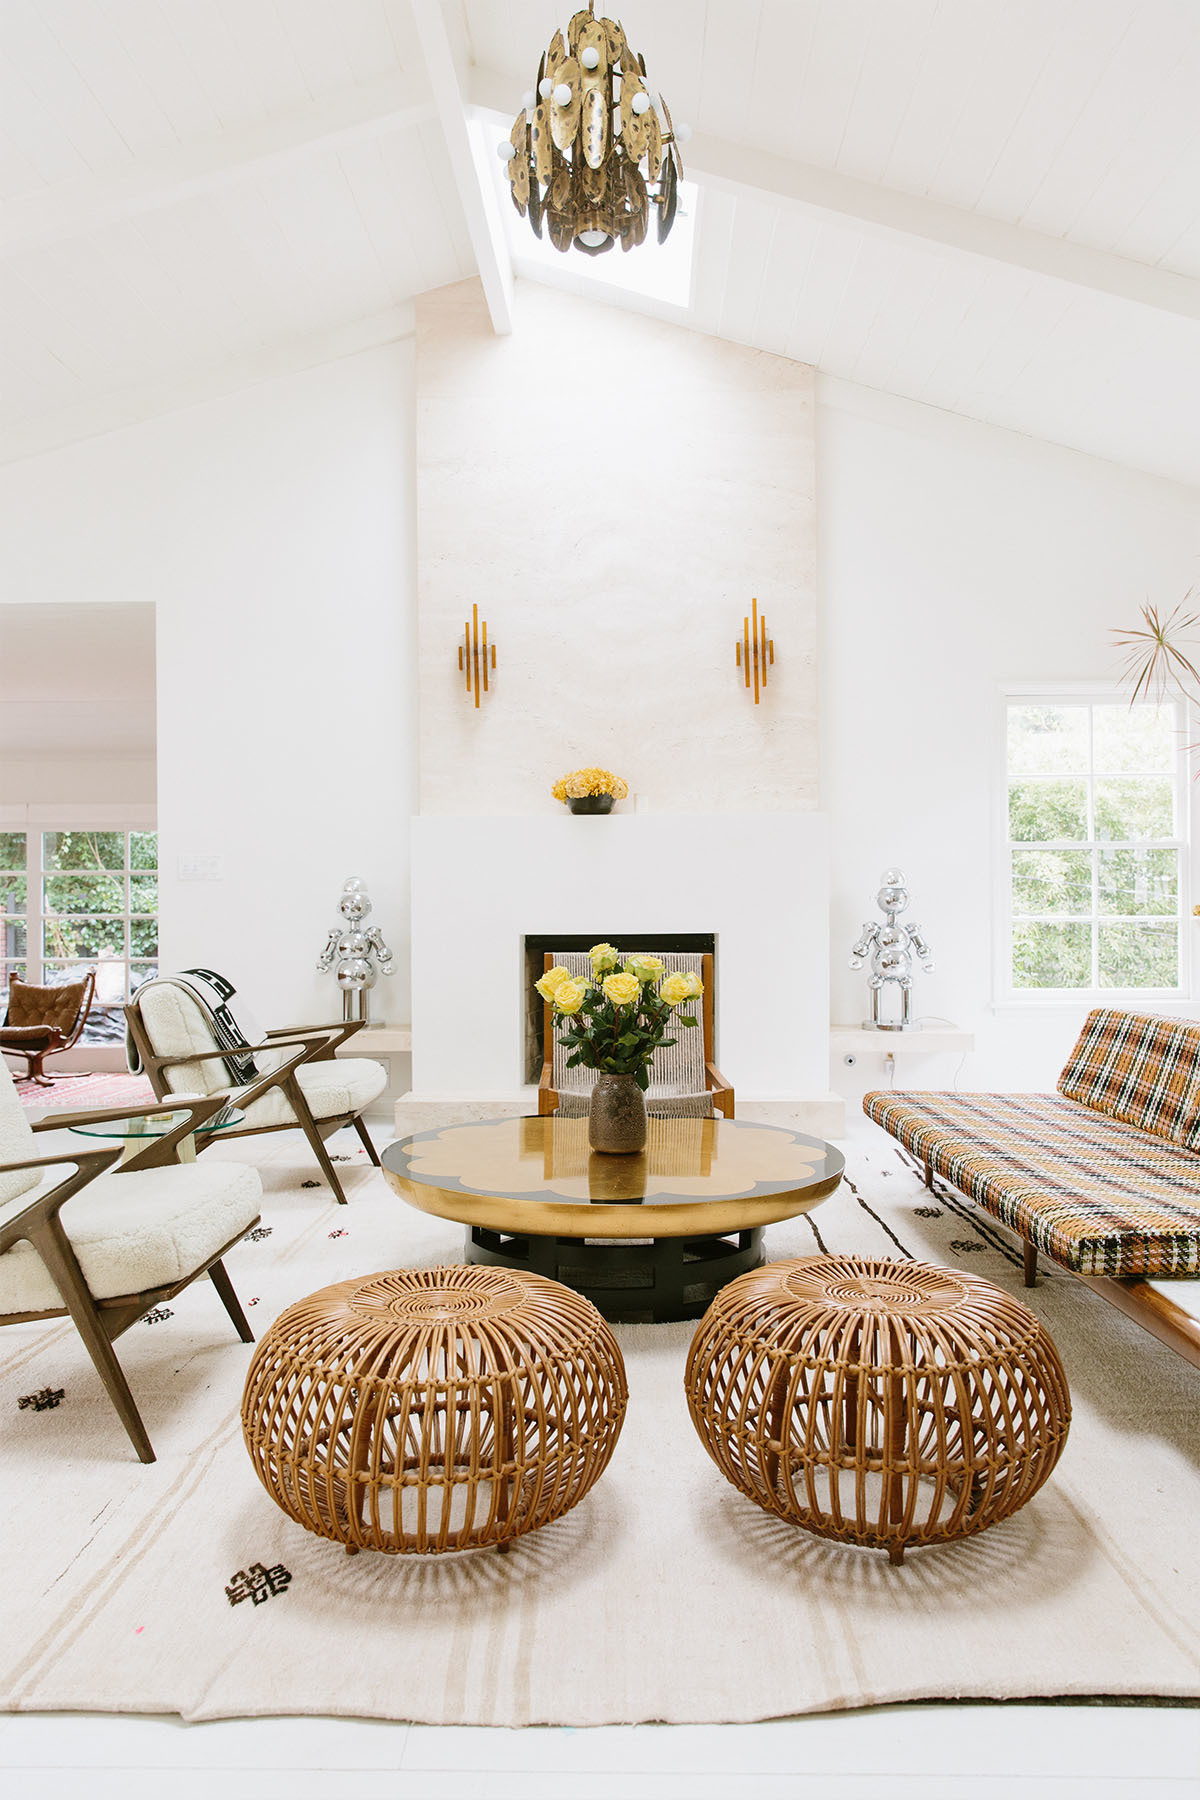 Eclectic vintage furniture is given a whole new lease of life inside the Sanders' Beverly Hills home. Lawrence of La Brea Rug | Vintage Italian 1970s' Robot Lamps, Set of Two | 1stdibs Sconce Lights | Chairs, Coffee Table, couple's own design | Vintage Sofa, Ottomans, Vase.